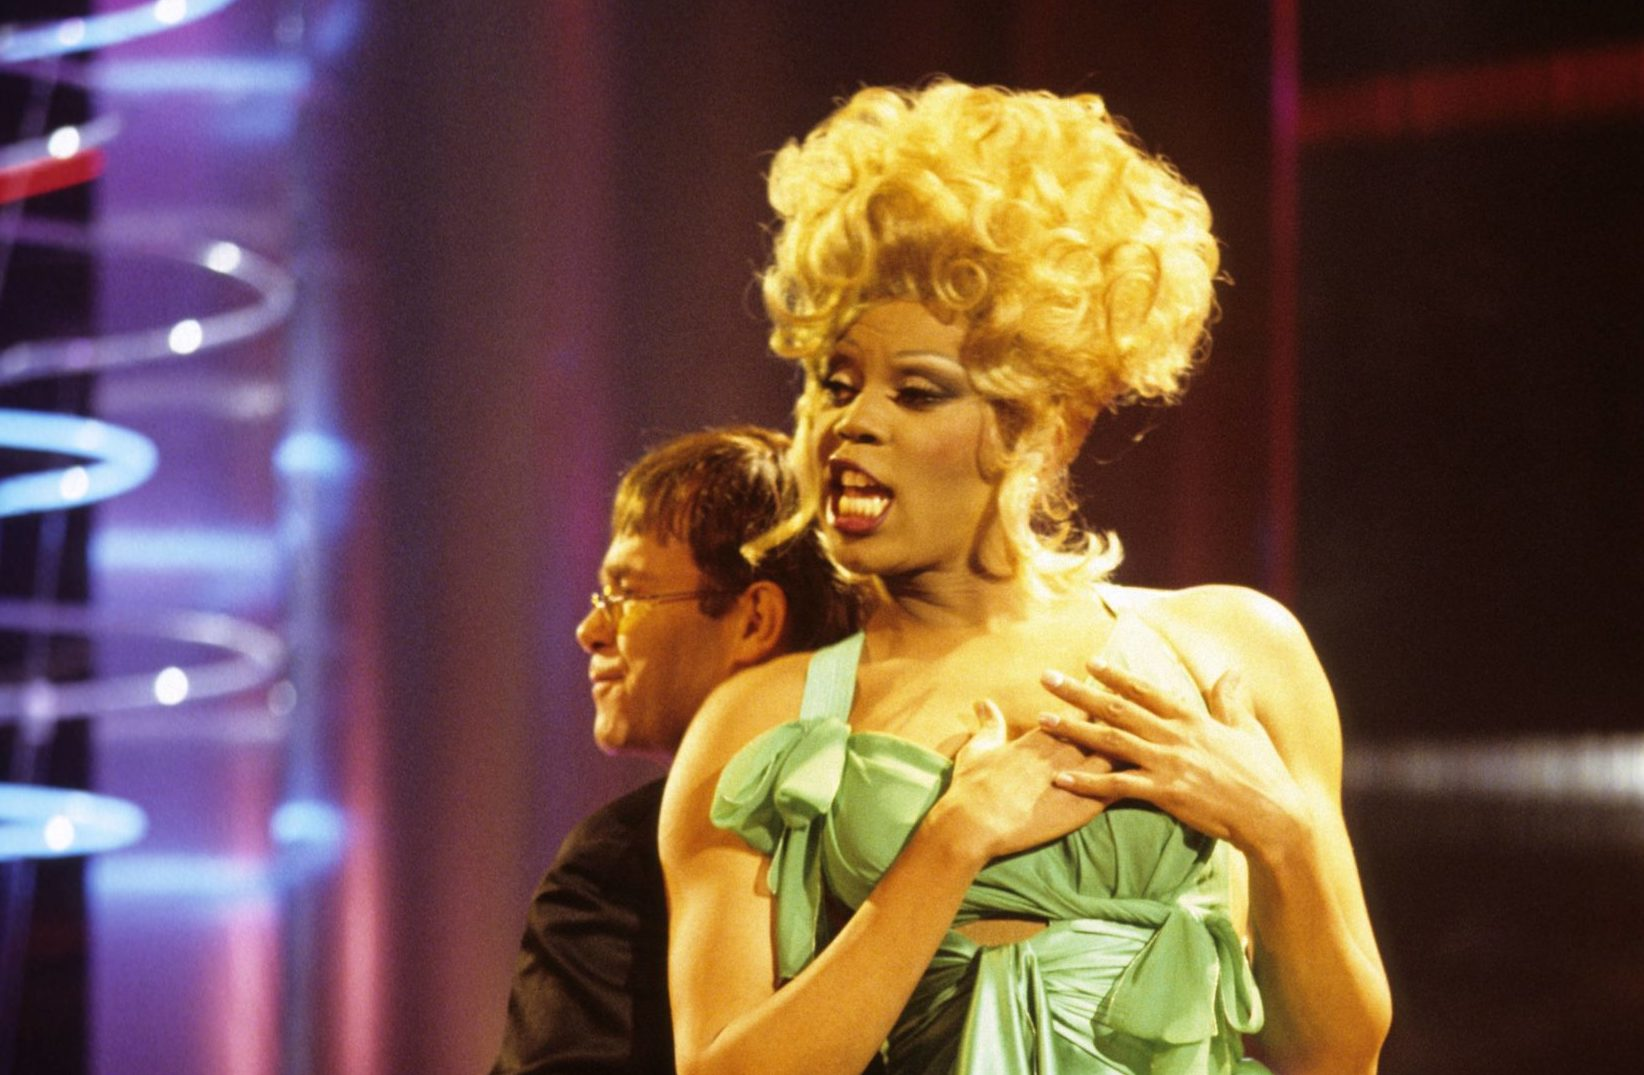 Remembering Elton John and RuPaul's iconic Brit Awards performance from 1994